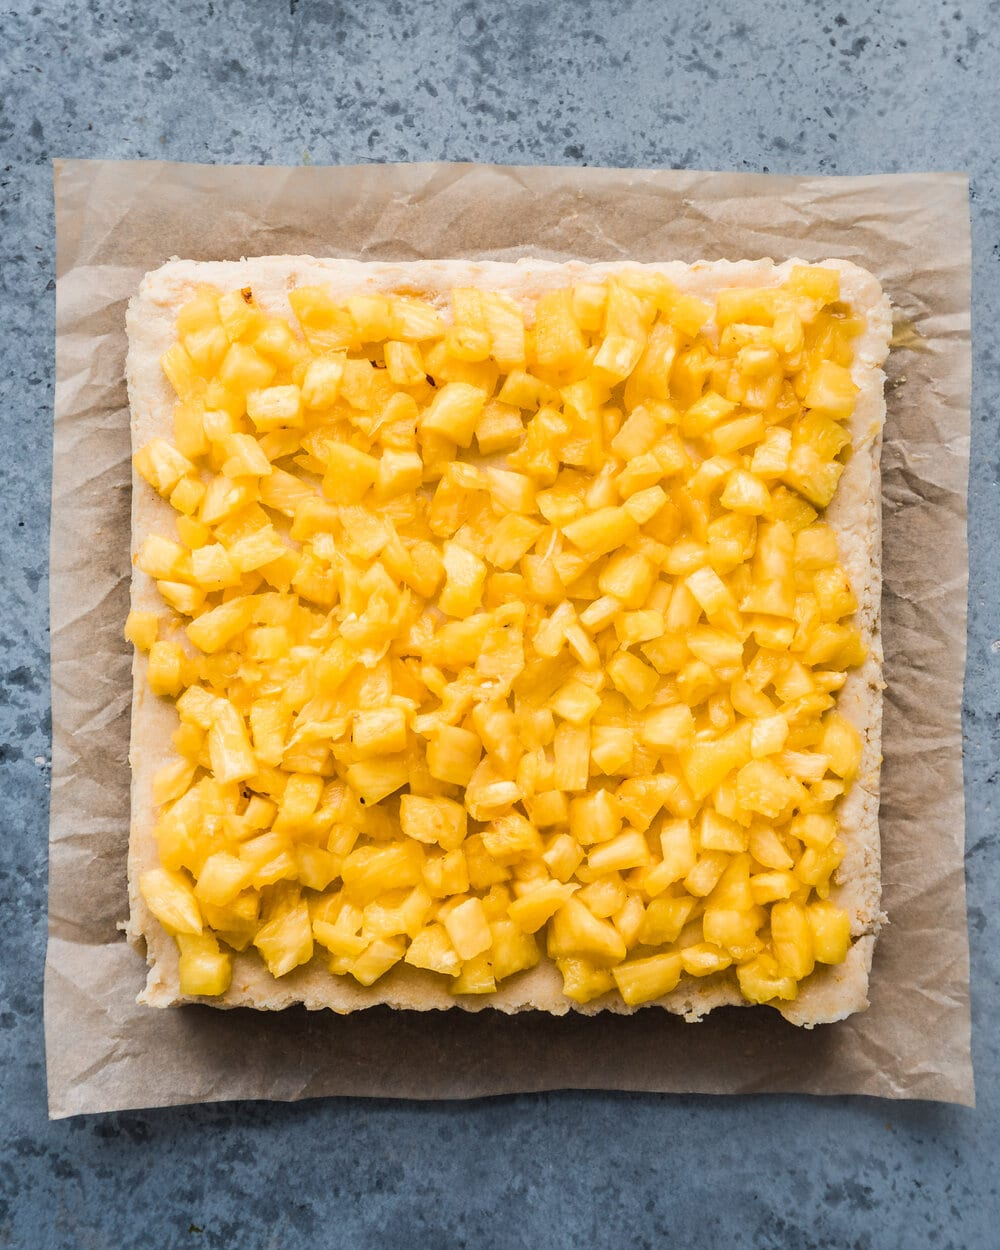 pineapple being added to cheesecake on parchment paper